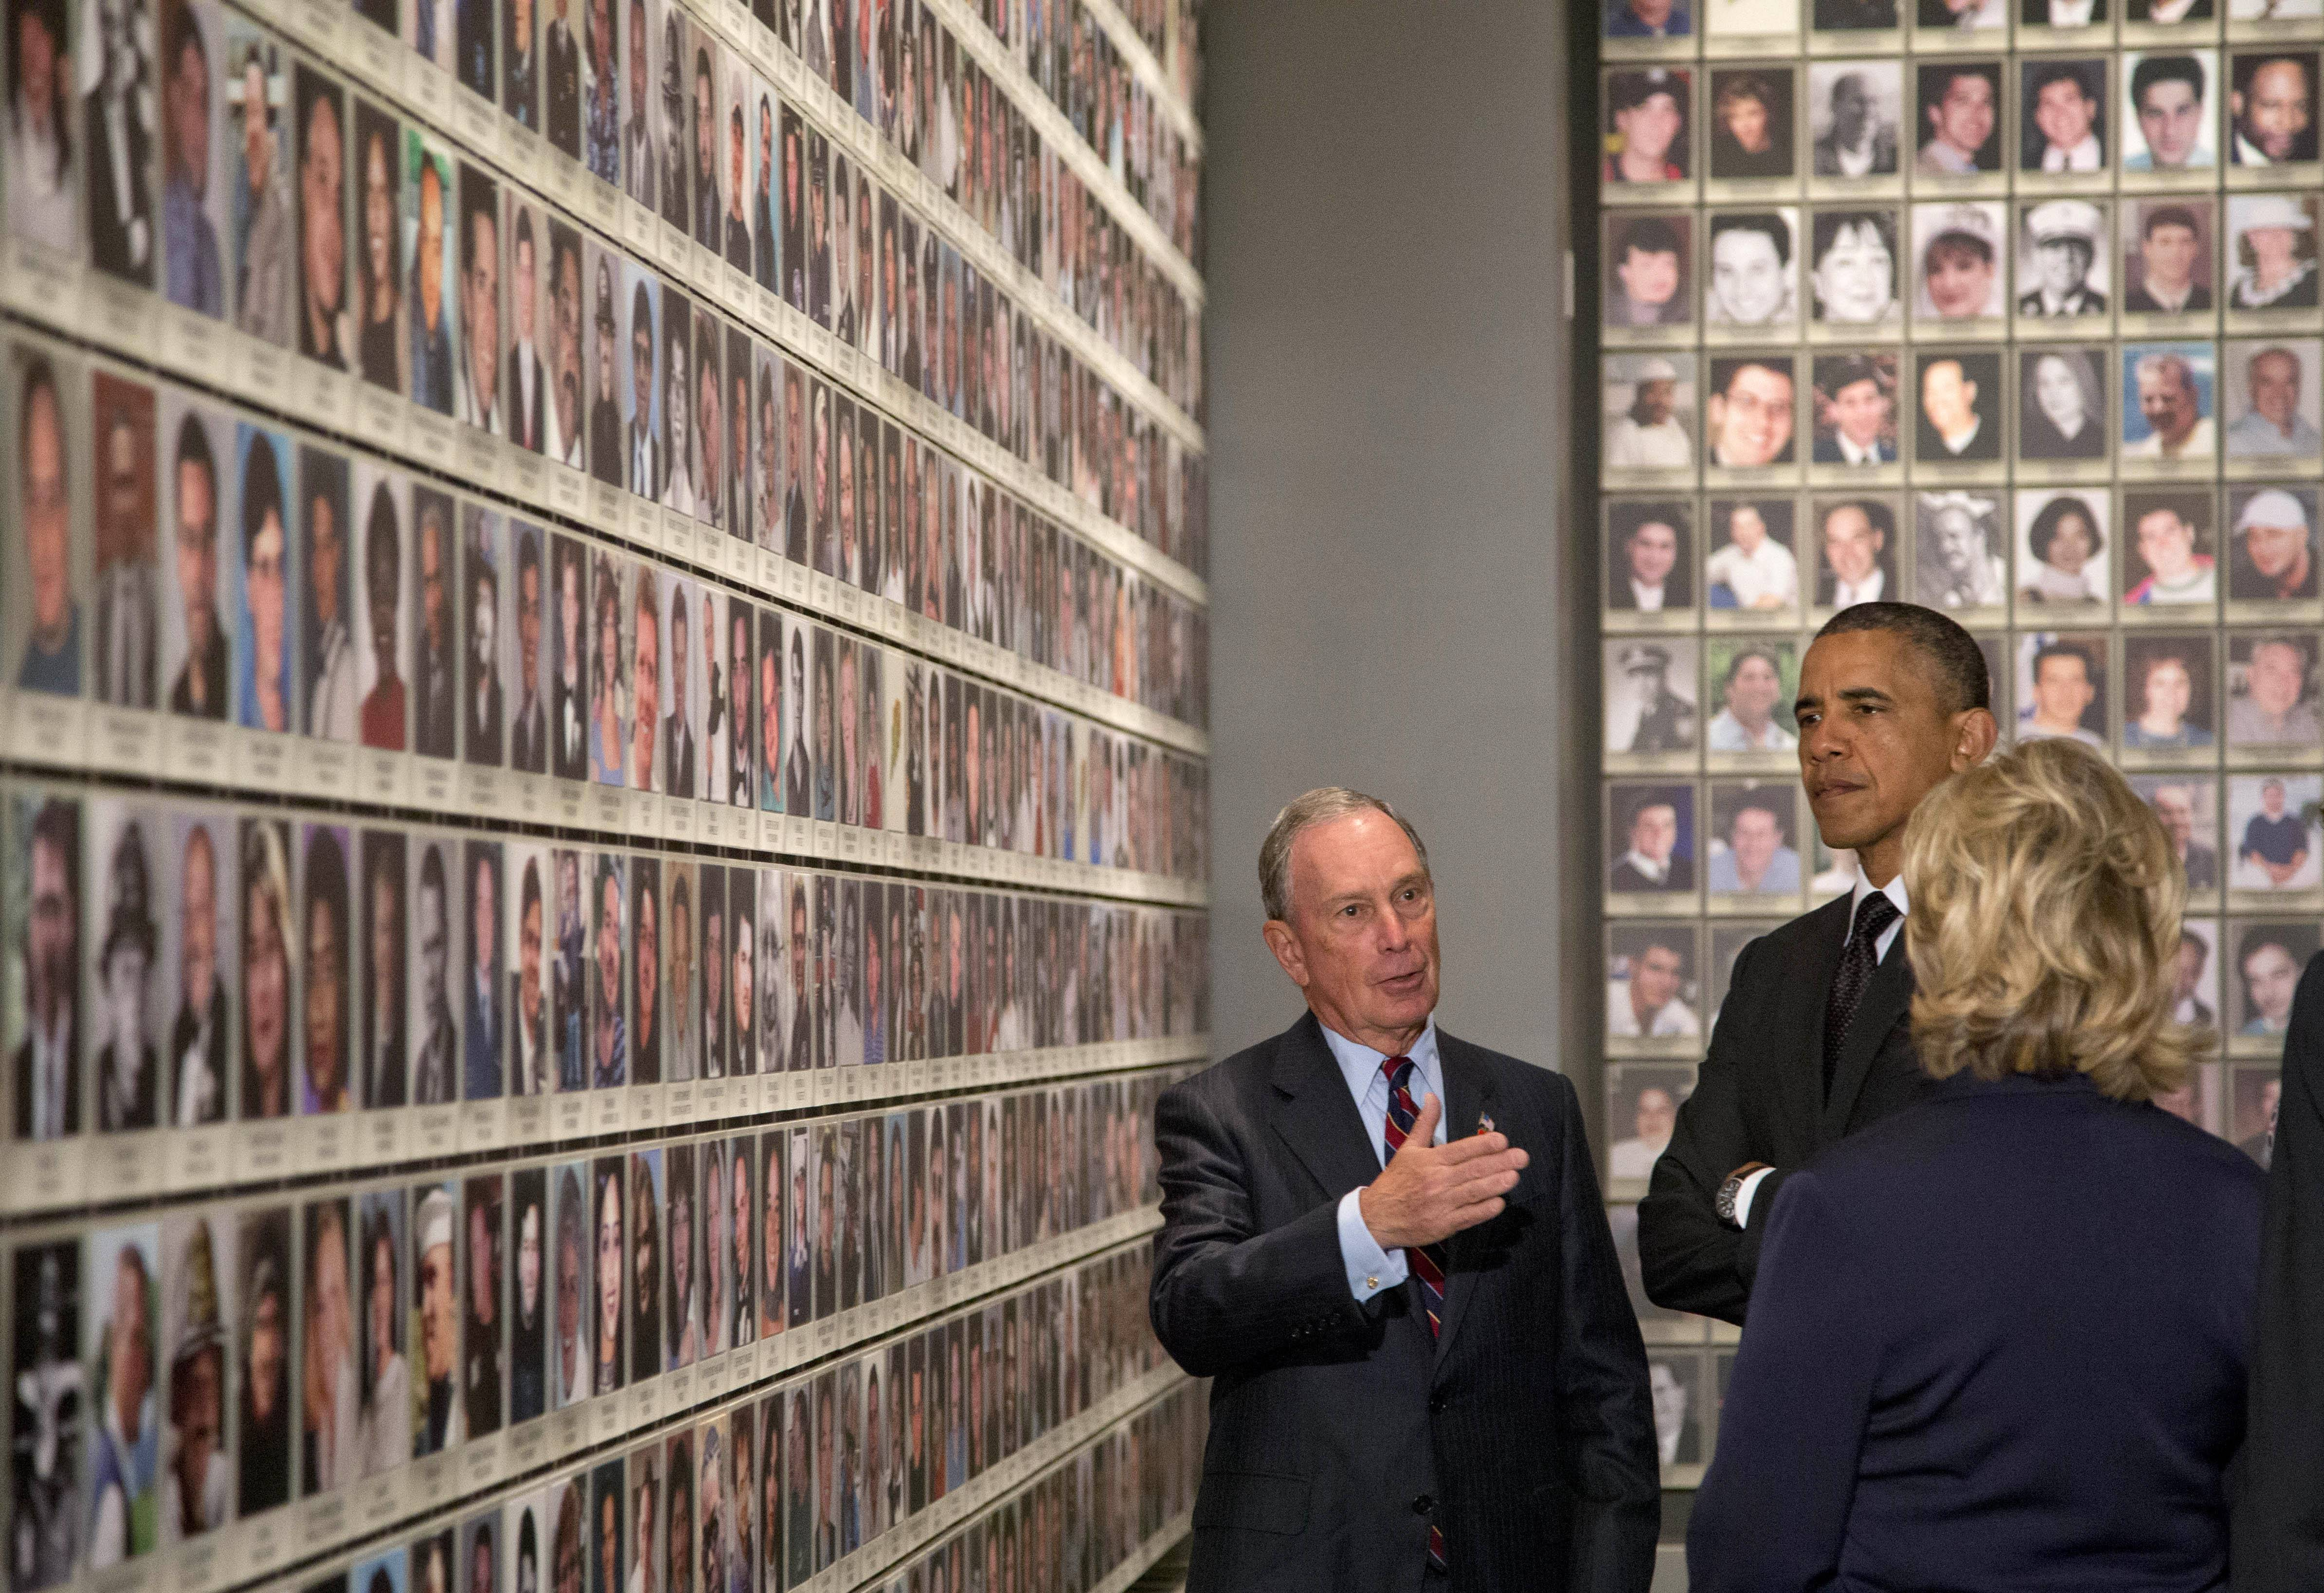 President Barack Obama and former Secretary of State Hillary Rodham Clinton tour  Memorial Hall at the National September 11 Memorial Museum with former New York City Mayor Michael Bloomberg. Speaking at the dedication, the president said, no act of terror can match the strength and character of the United States.